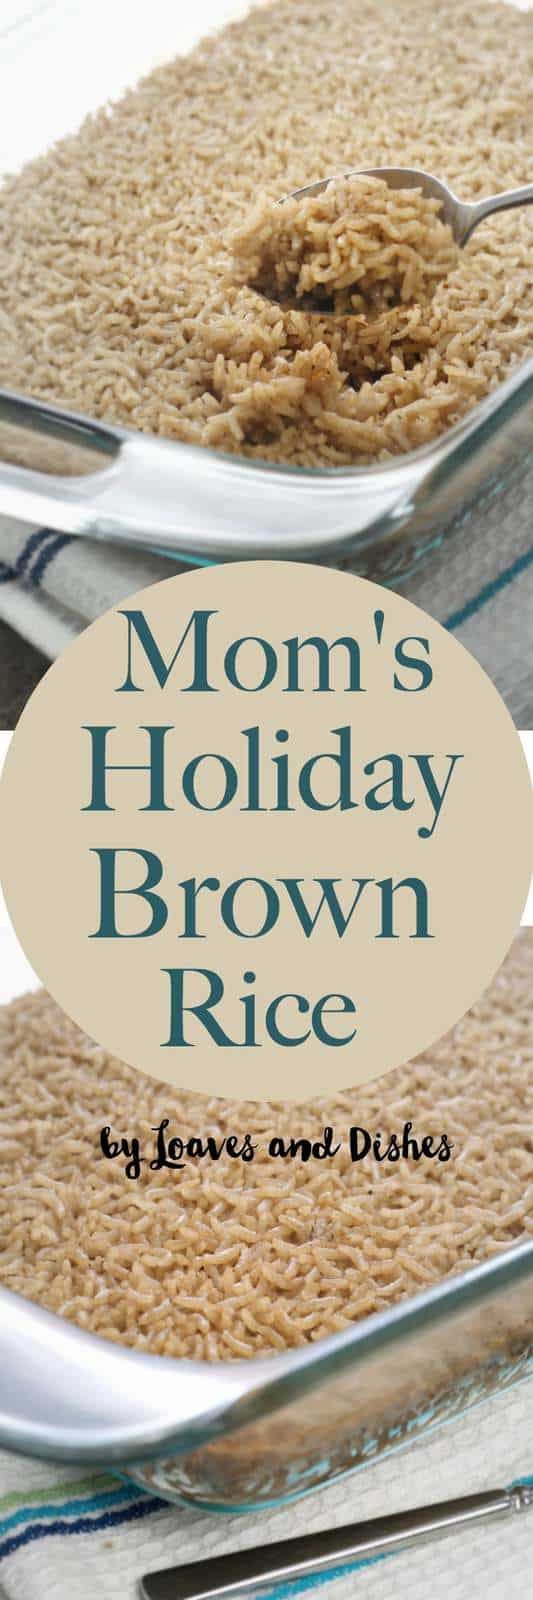 Healthy Baked Rice Dish that is one dish and made simple. Southern, easy comfort food. What's not to like? Easy Recipe for Brown Rice.